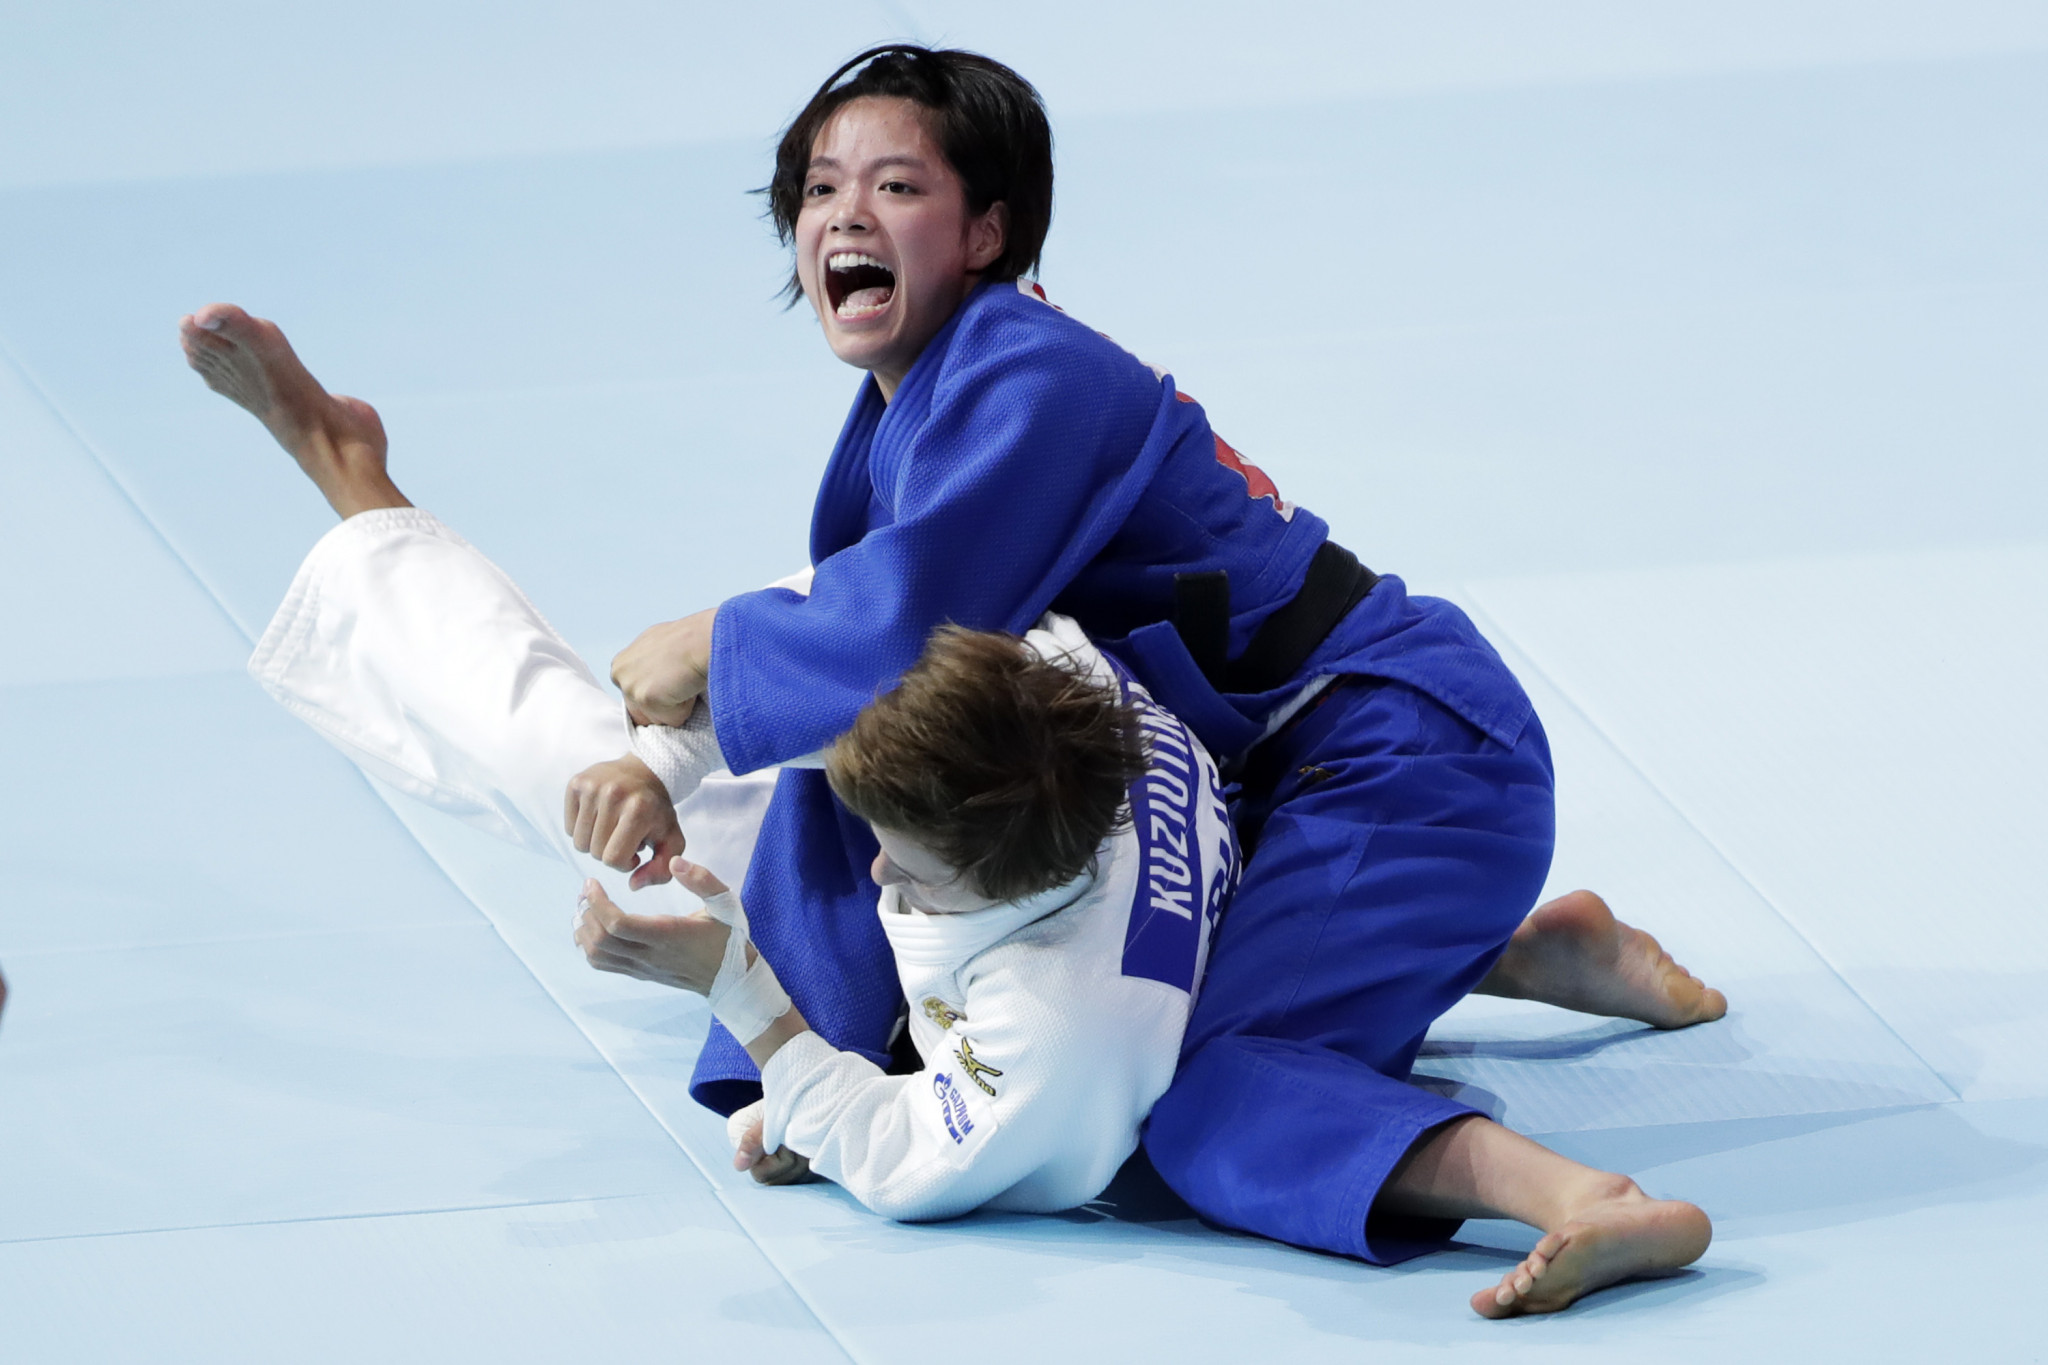 Uta Abe won her second successive World Championships title in the women's under-52 kilograms category, beating Russia's Natalia Kuziutina with an ippon throw after just 29 seconds of the final ©Getty Images